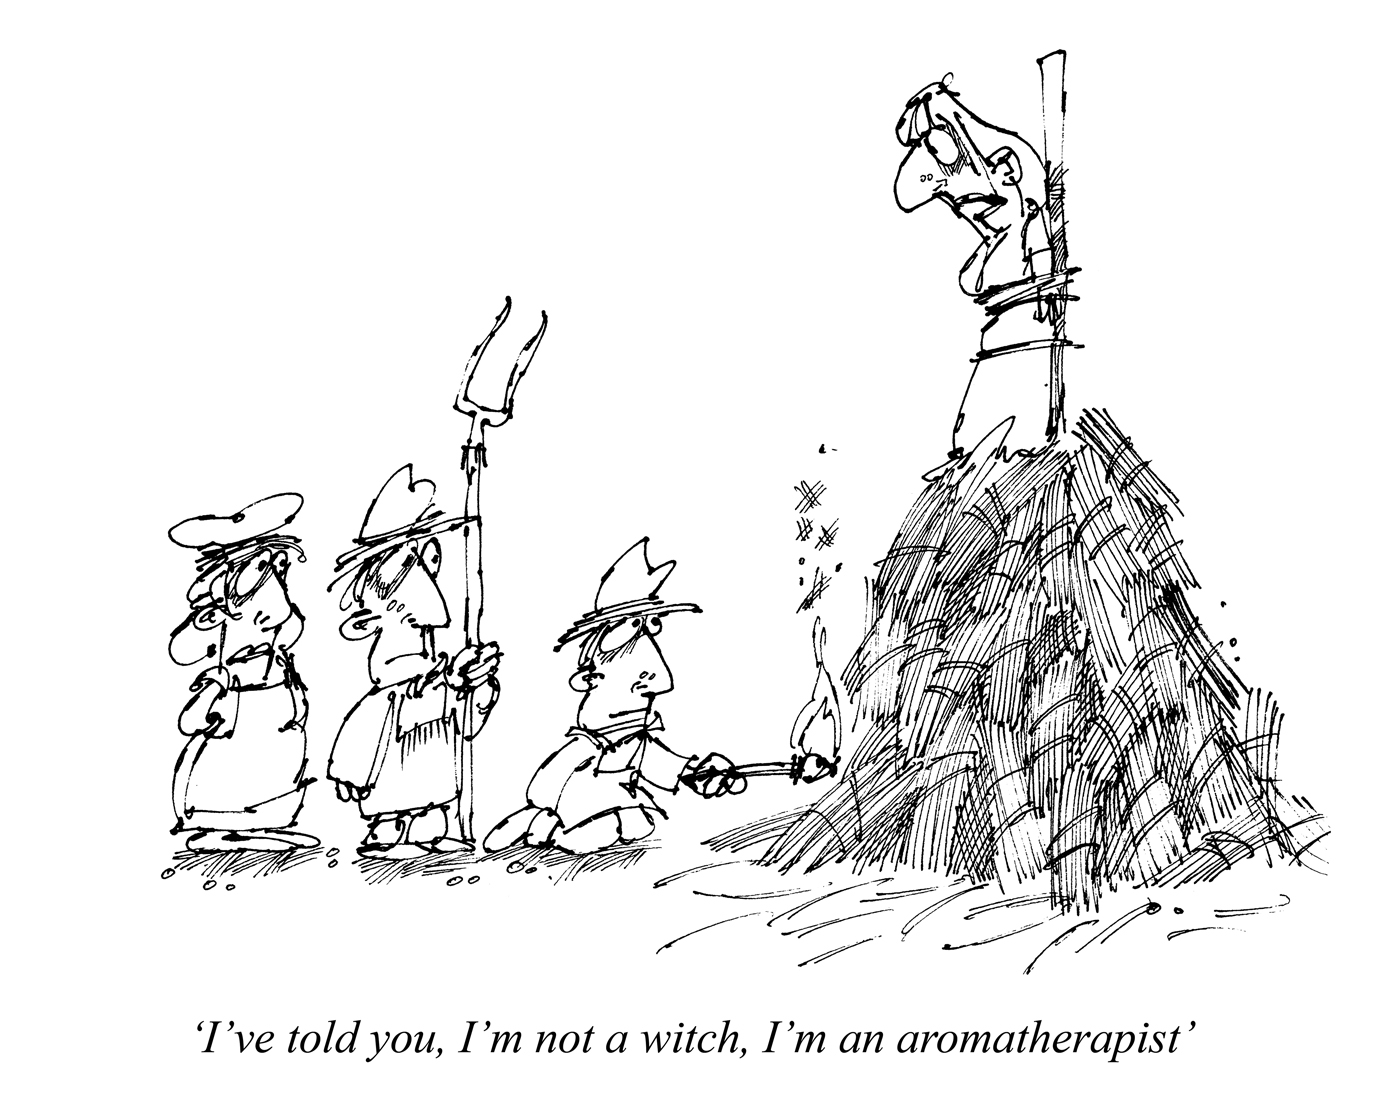 """I've told you, I'm not a witch, I'm an aromatherapist."" © Punch Ltd"